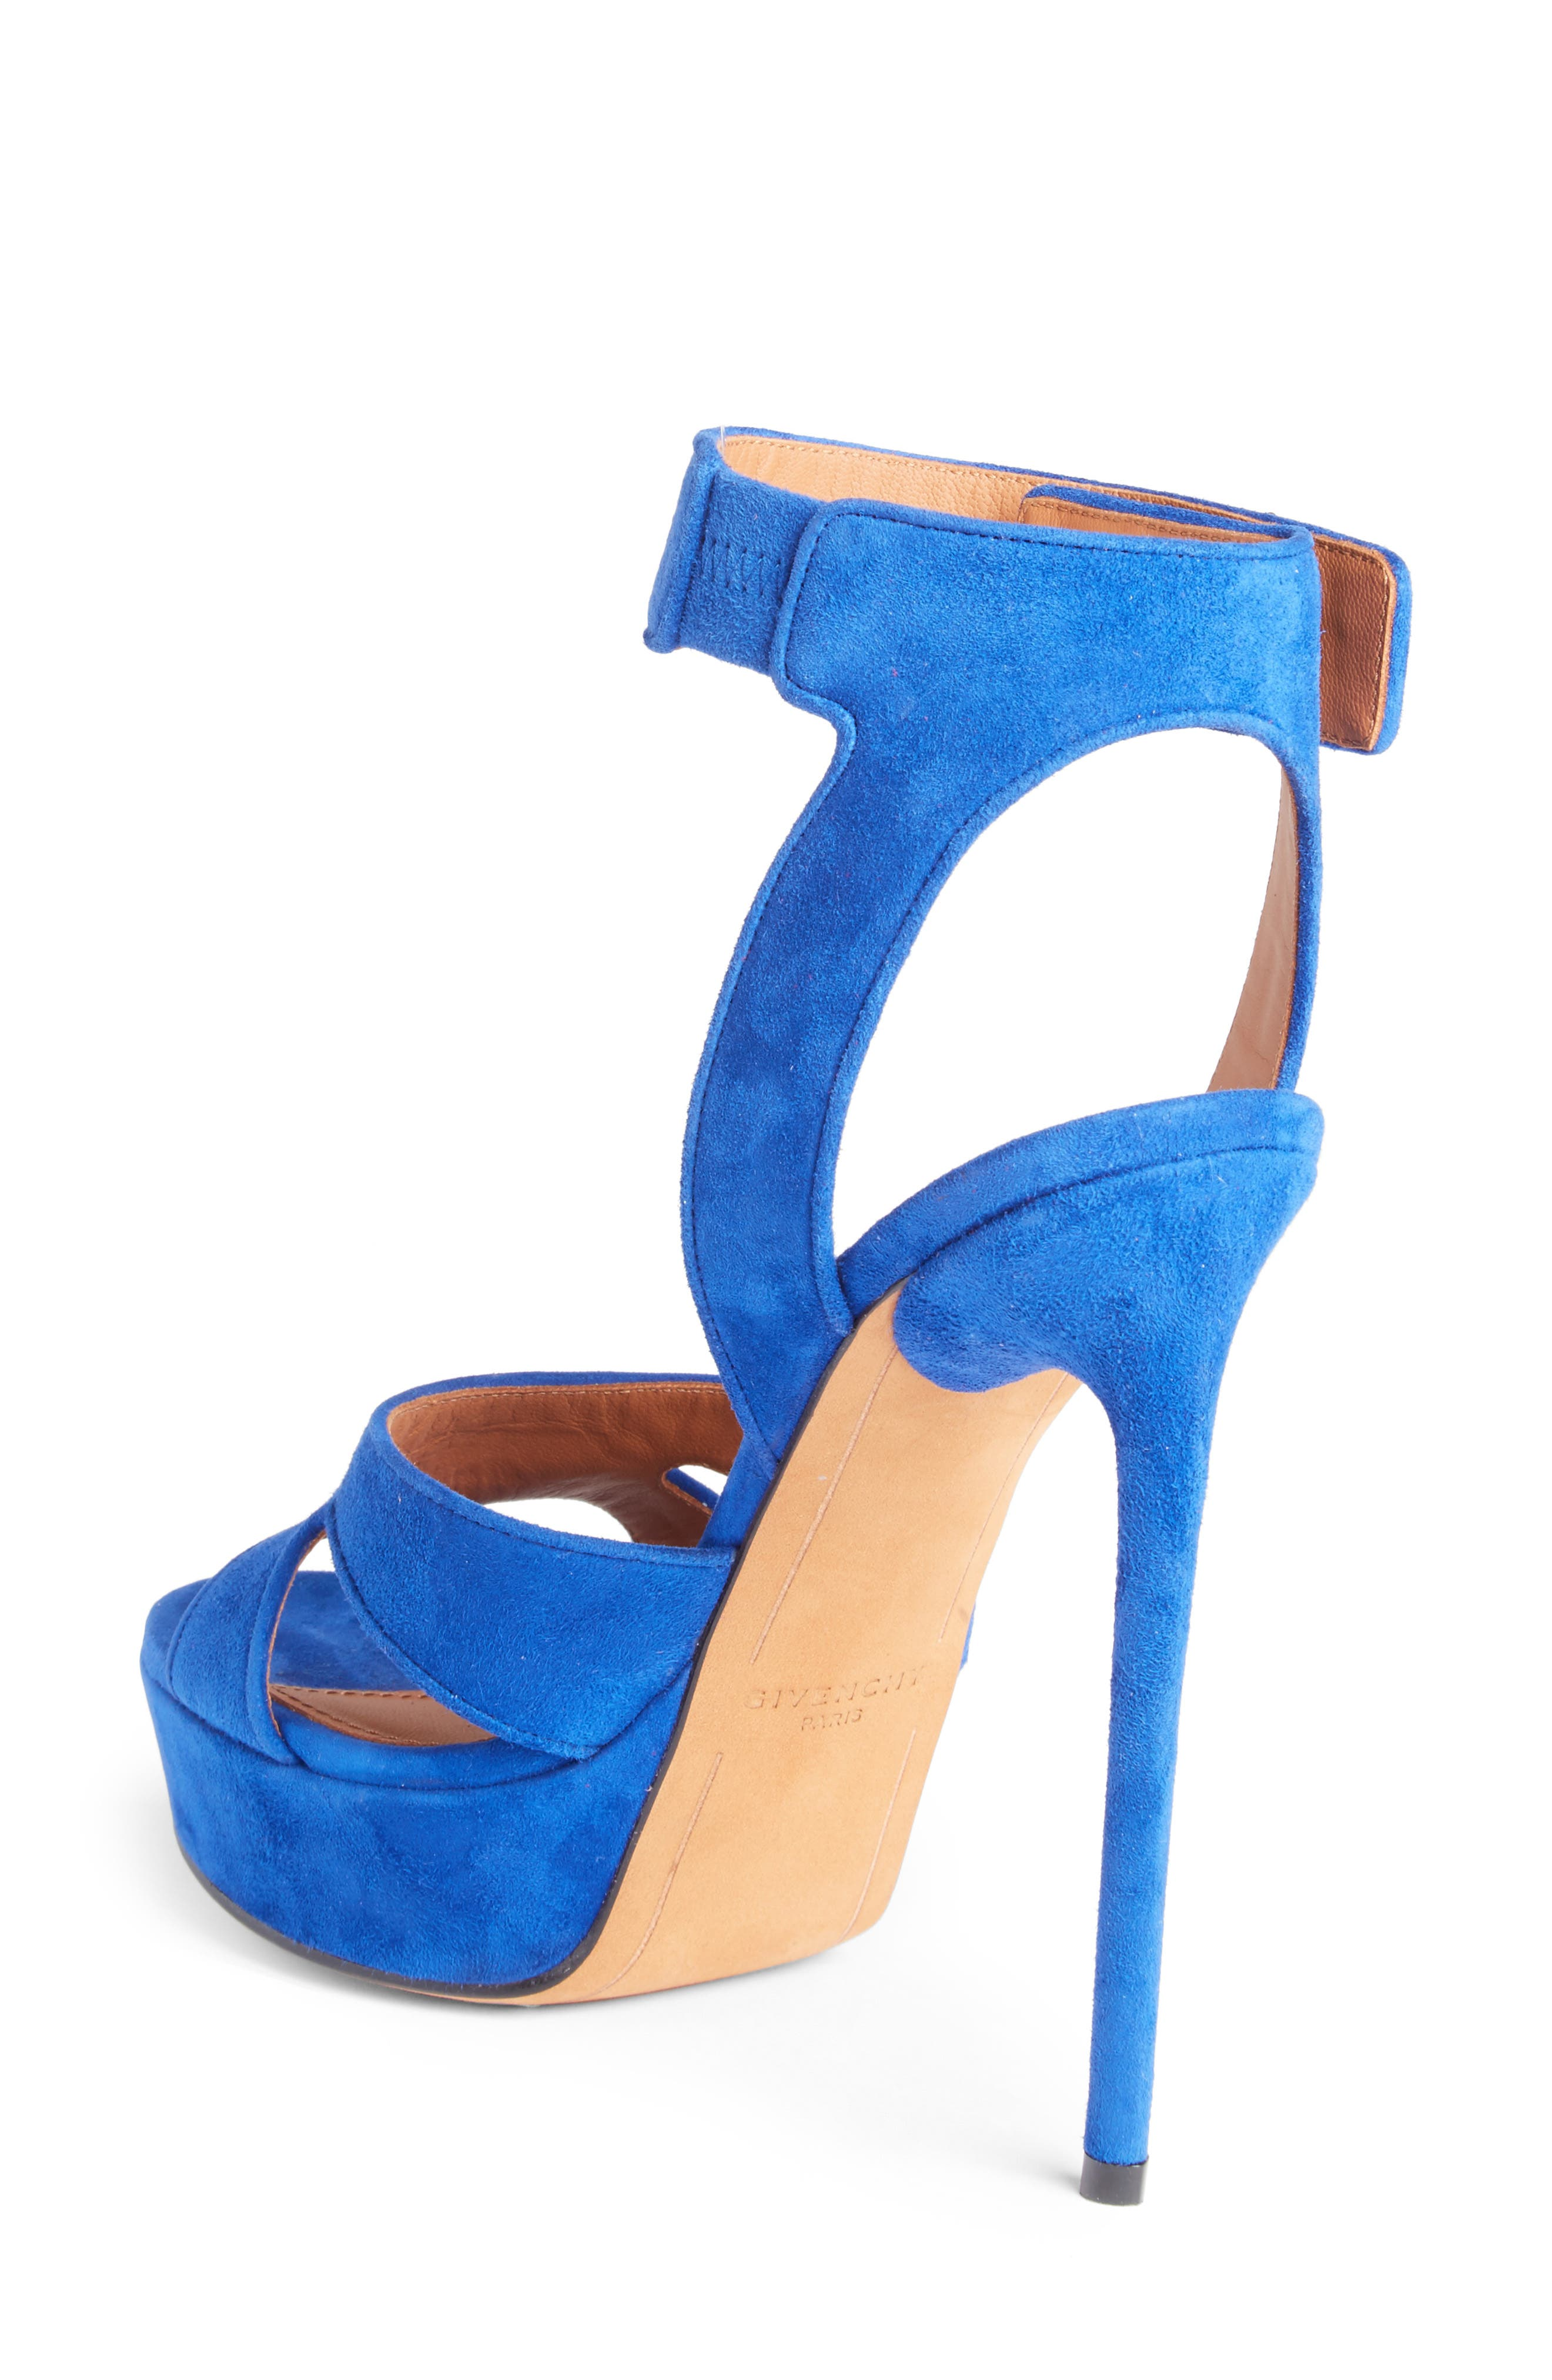 Shark's Tooth Sandal,                             Alternate thumbnail 2, color,                             Electric Blue